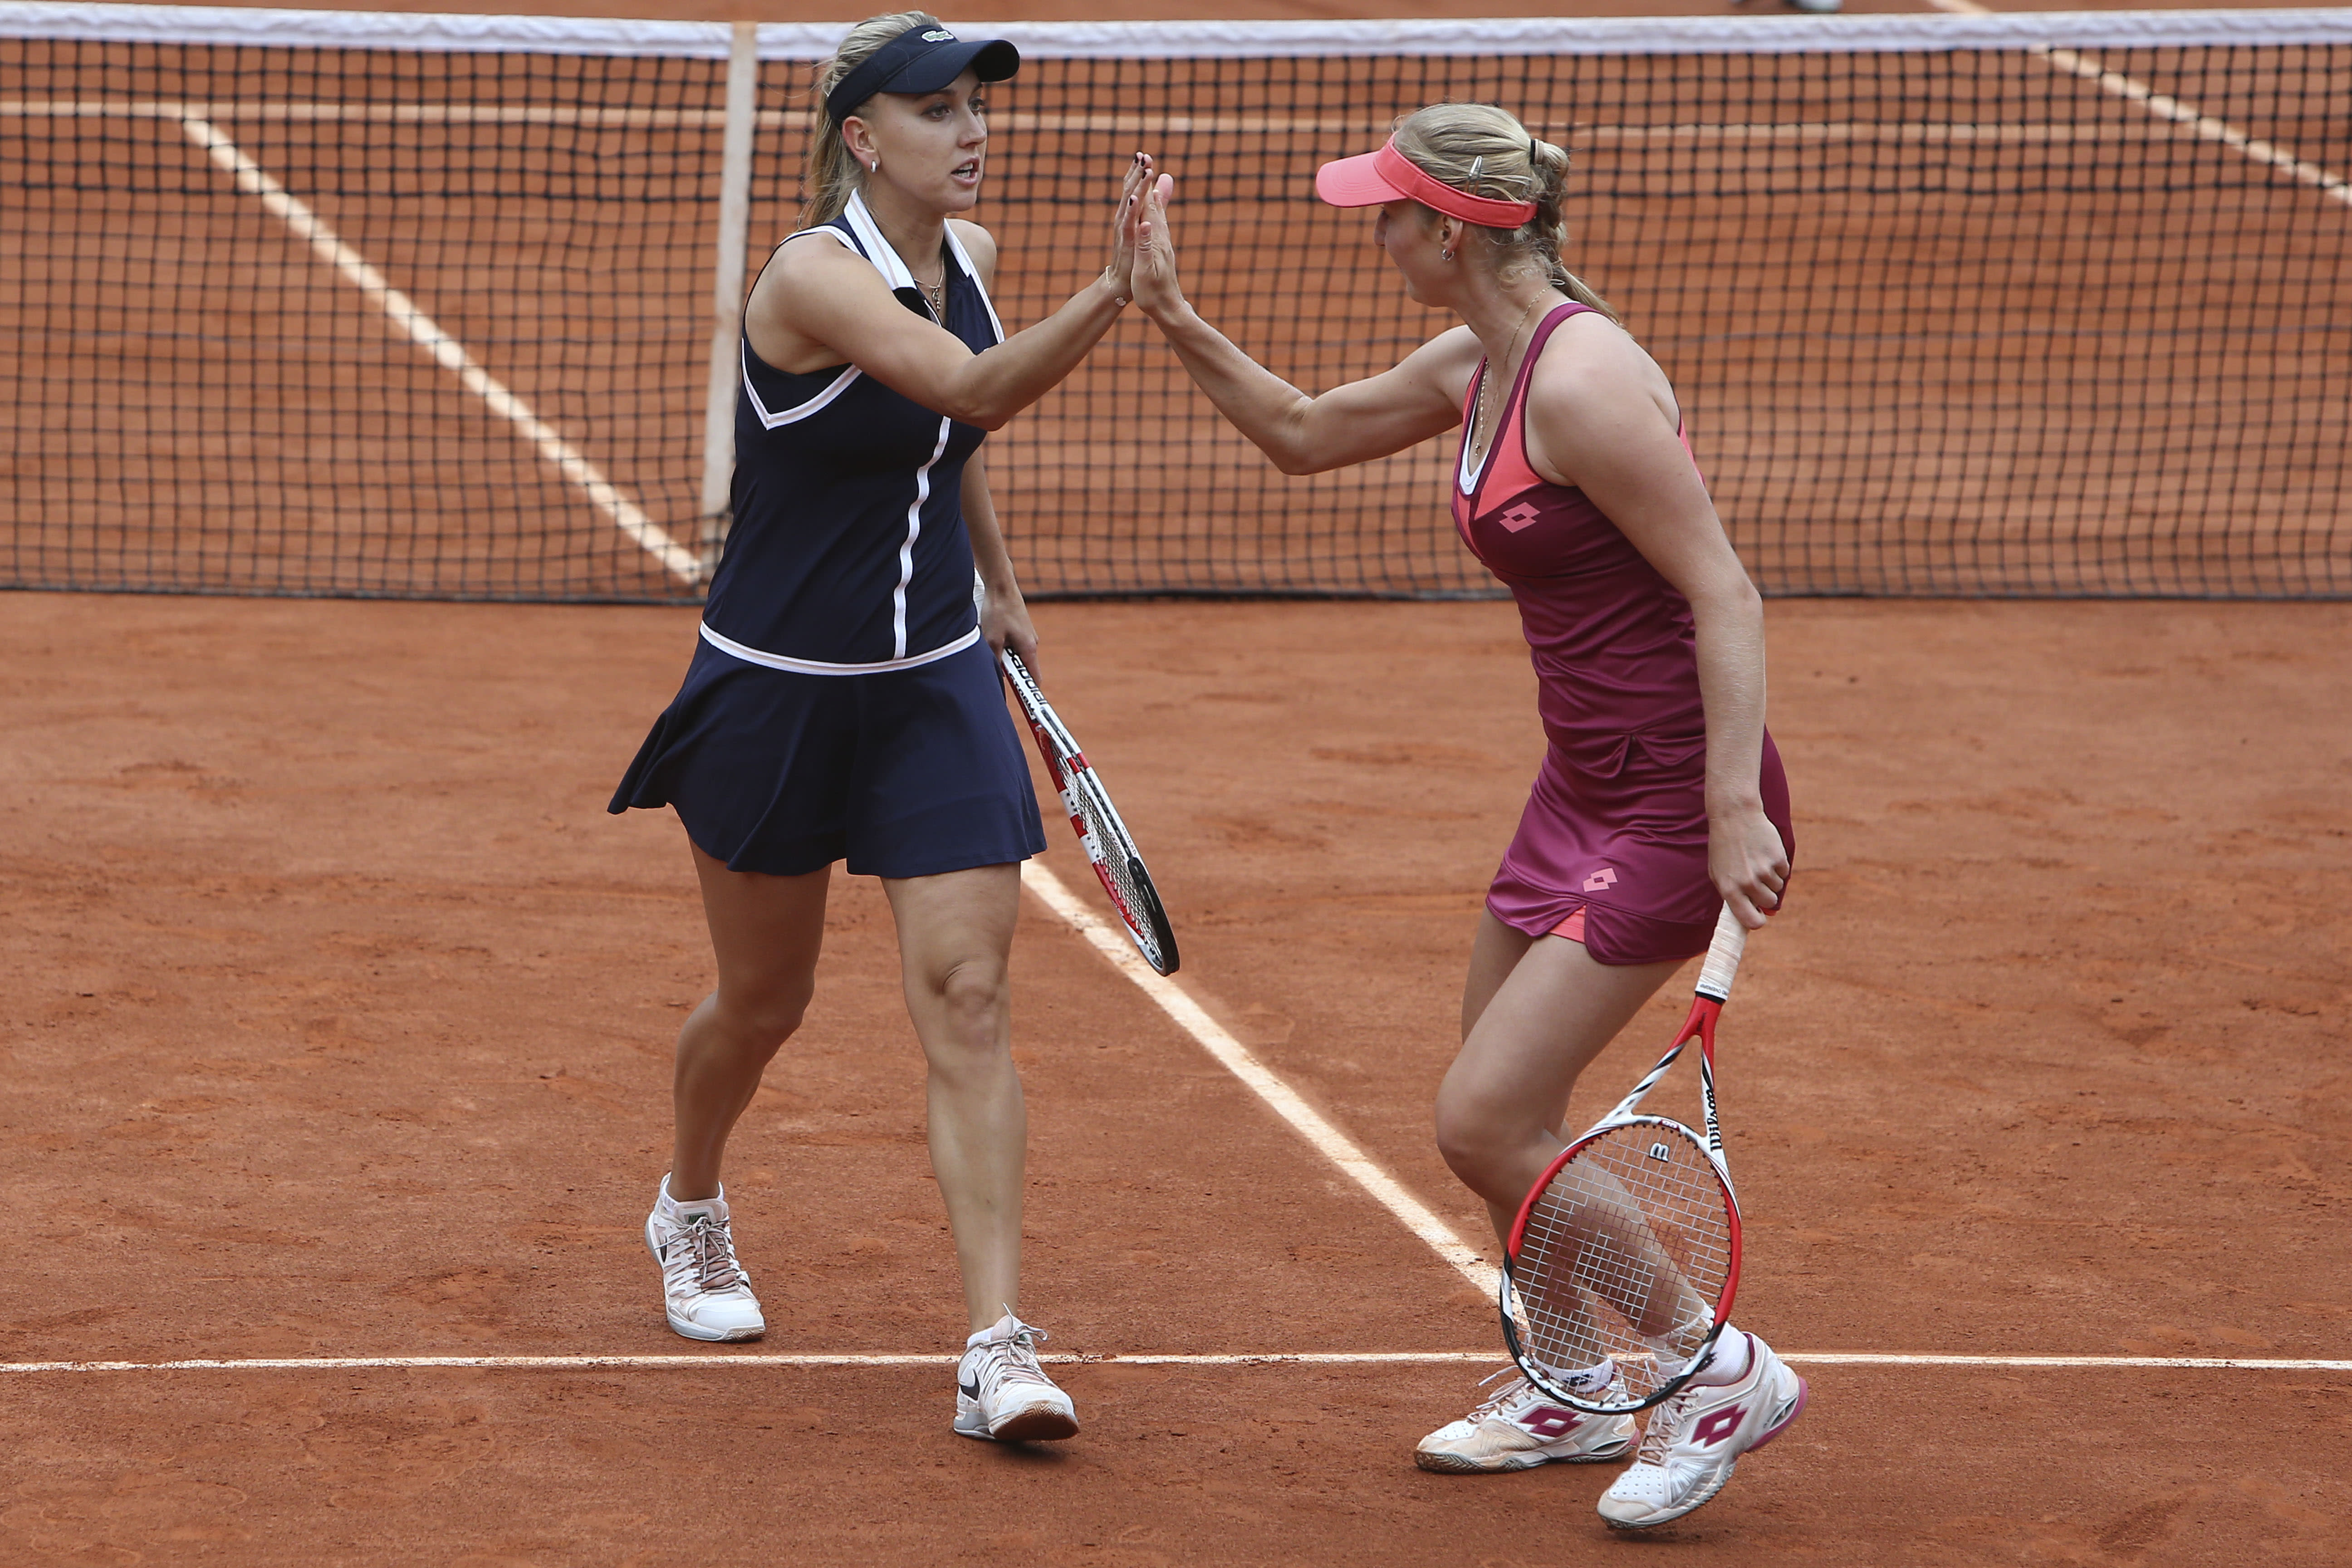 Russia's Ekaterina Makarova, right, and Elena Vesnina, left, celebrate scoring against Italy's Sara Errani and Roberta Vinci in the women's doubles final of the French Open tennis tournament, at Roland Garros stadium in Paris, Sunday June 9, 2013. (AP Photo/David Vincent)